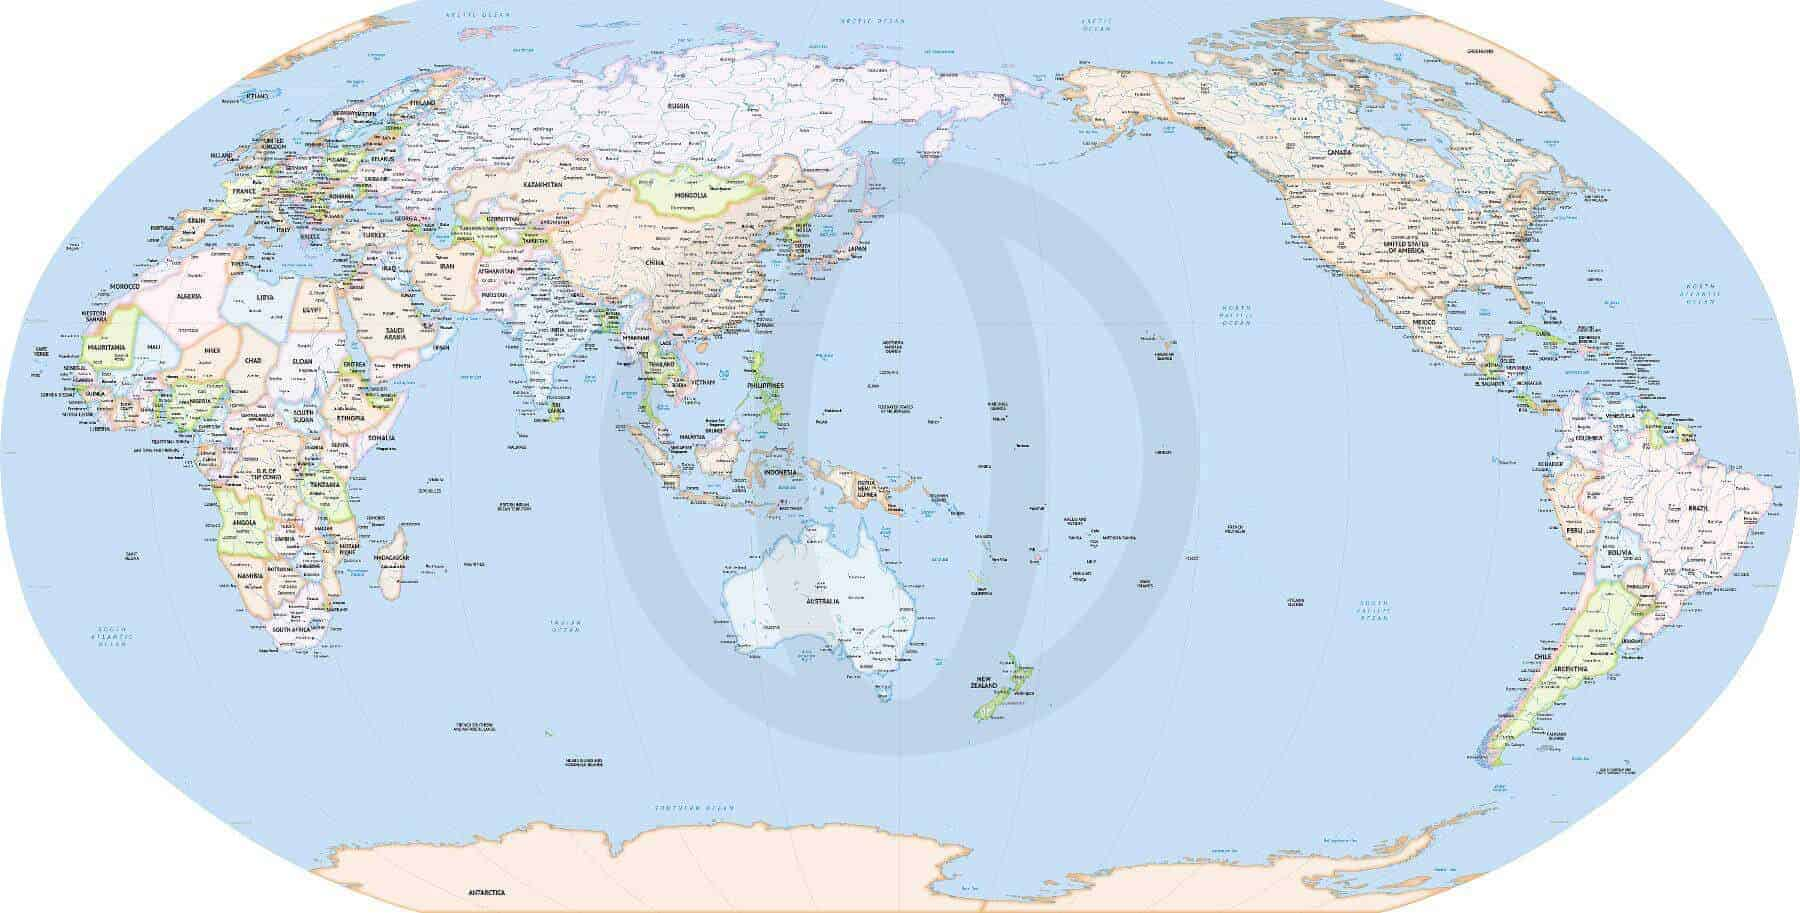 World Map With Australia.Formal Map Of The World Political High Detail Robinson Australia And Asia Centered